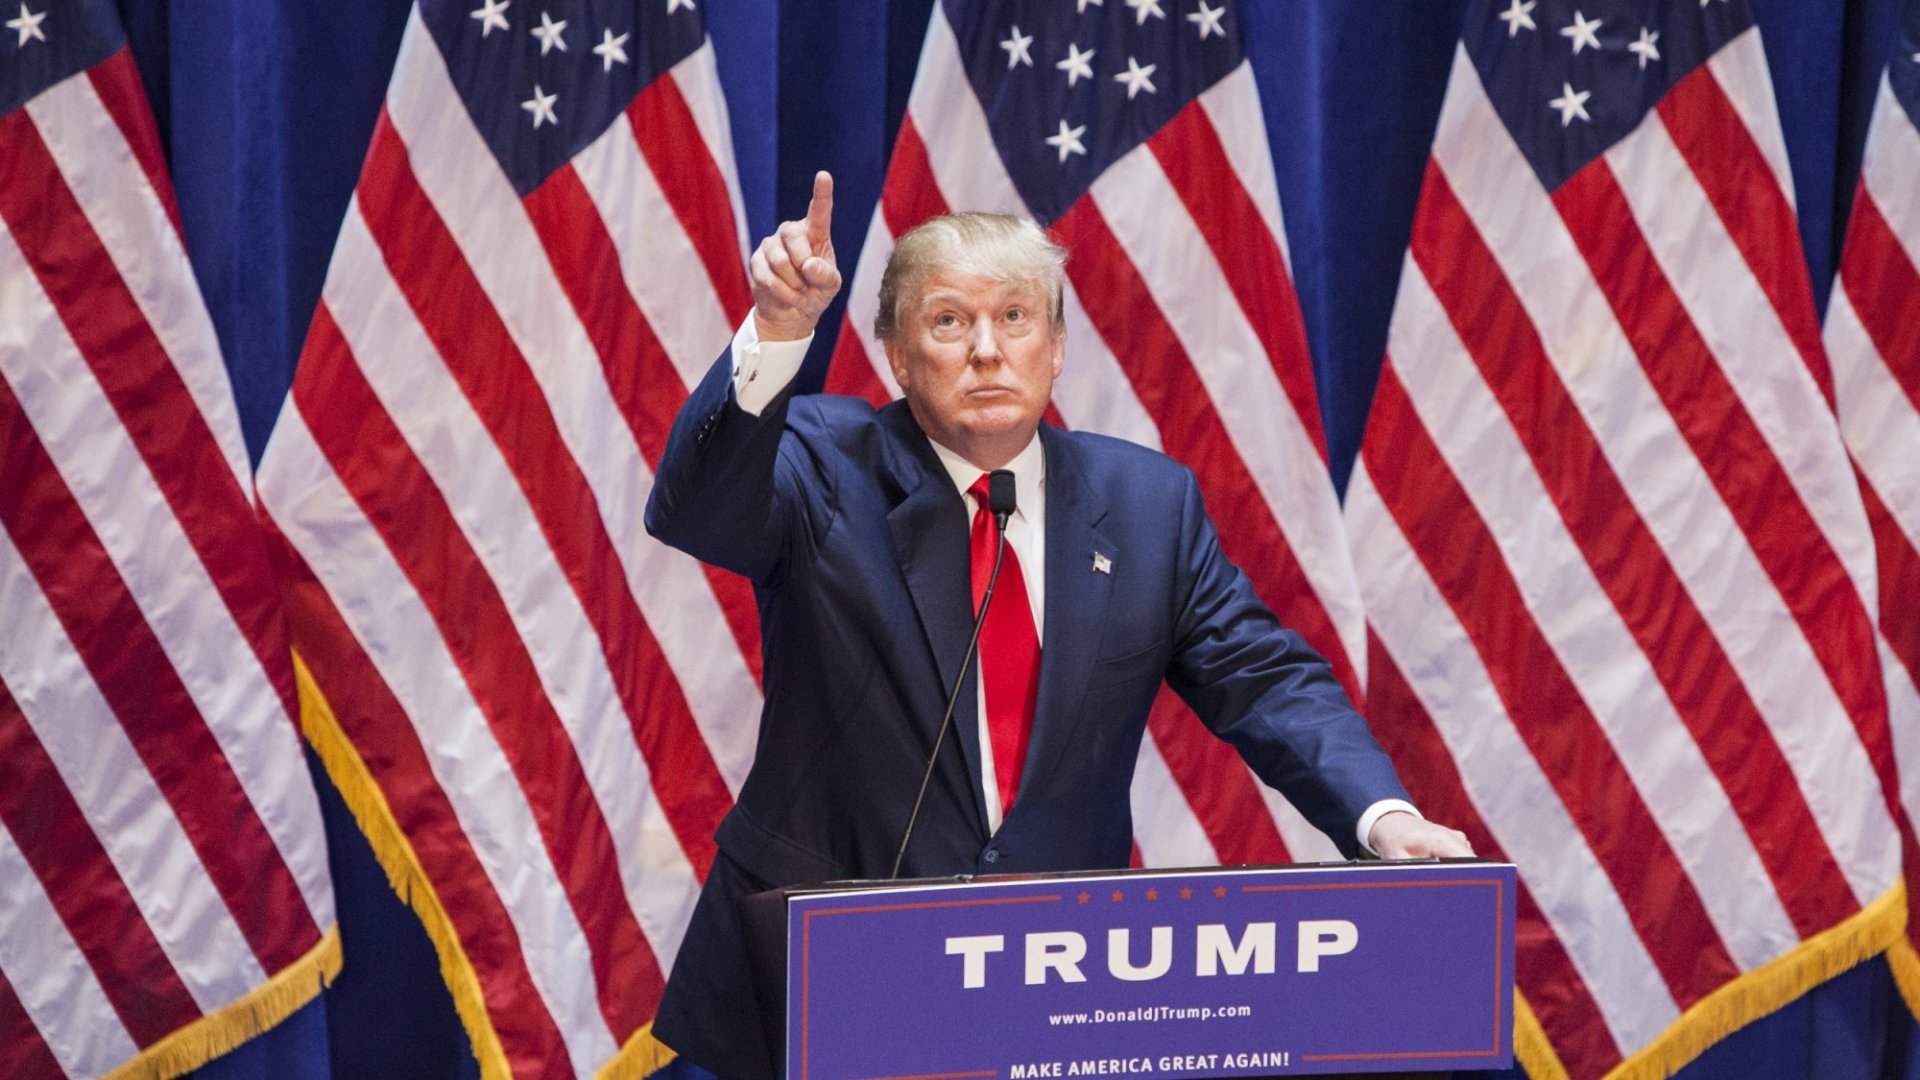 Real estate mogul Donald Trump currently leads among Republican challengers